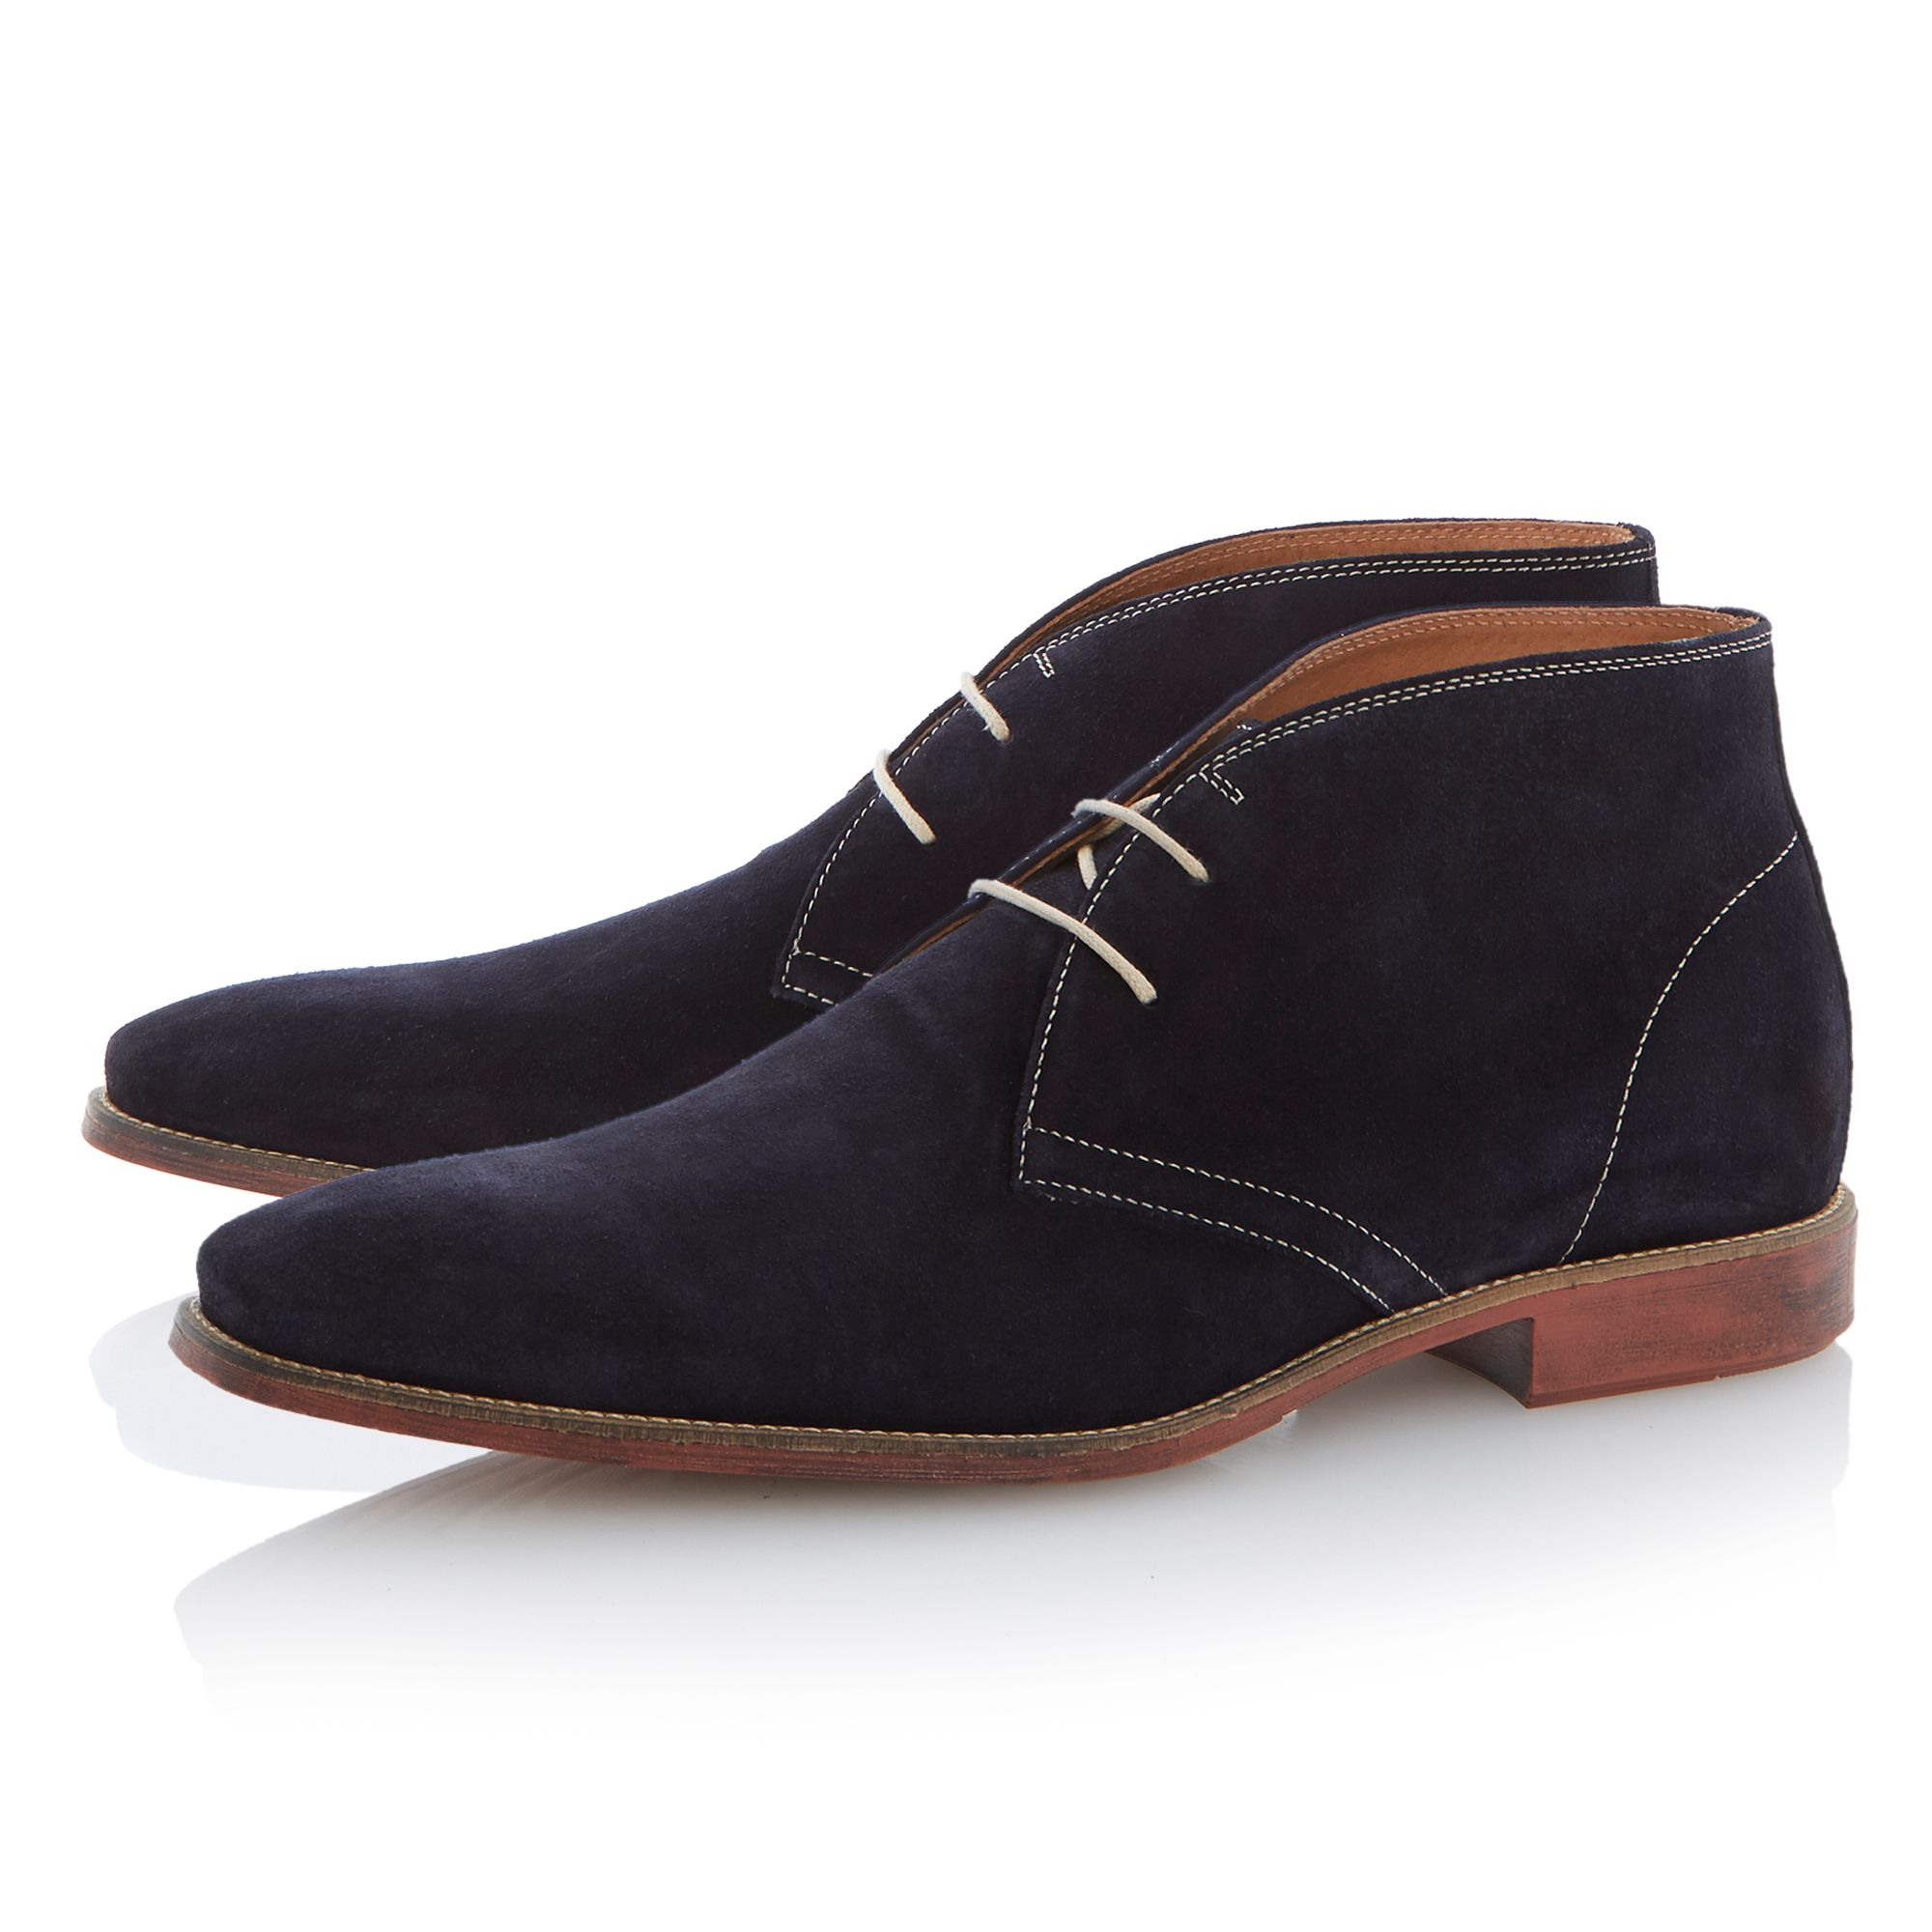 Chisel toe casual boot